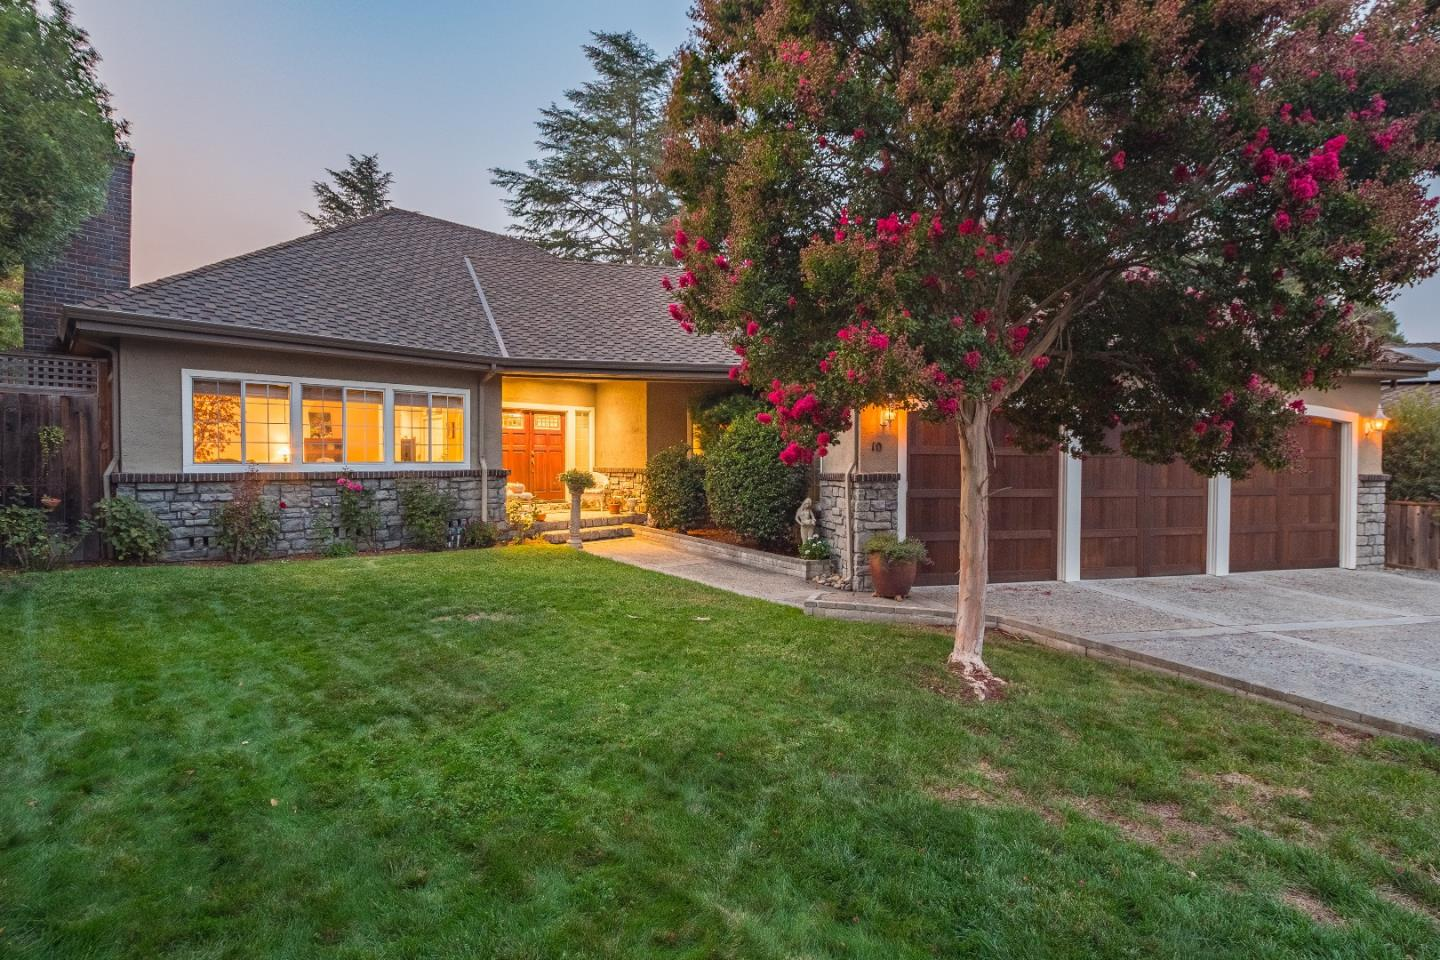 Single Family Home for Sale at 10 Sterling Lane 10 Sterling Lane Scotts Valley, California 95066 United States